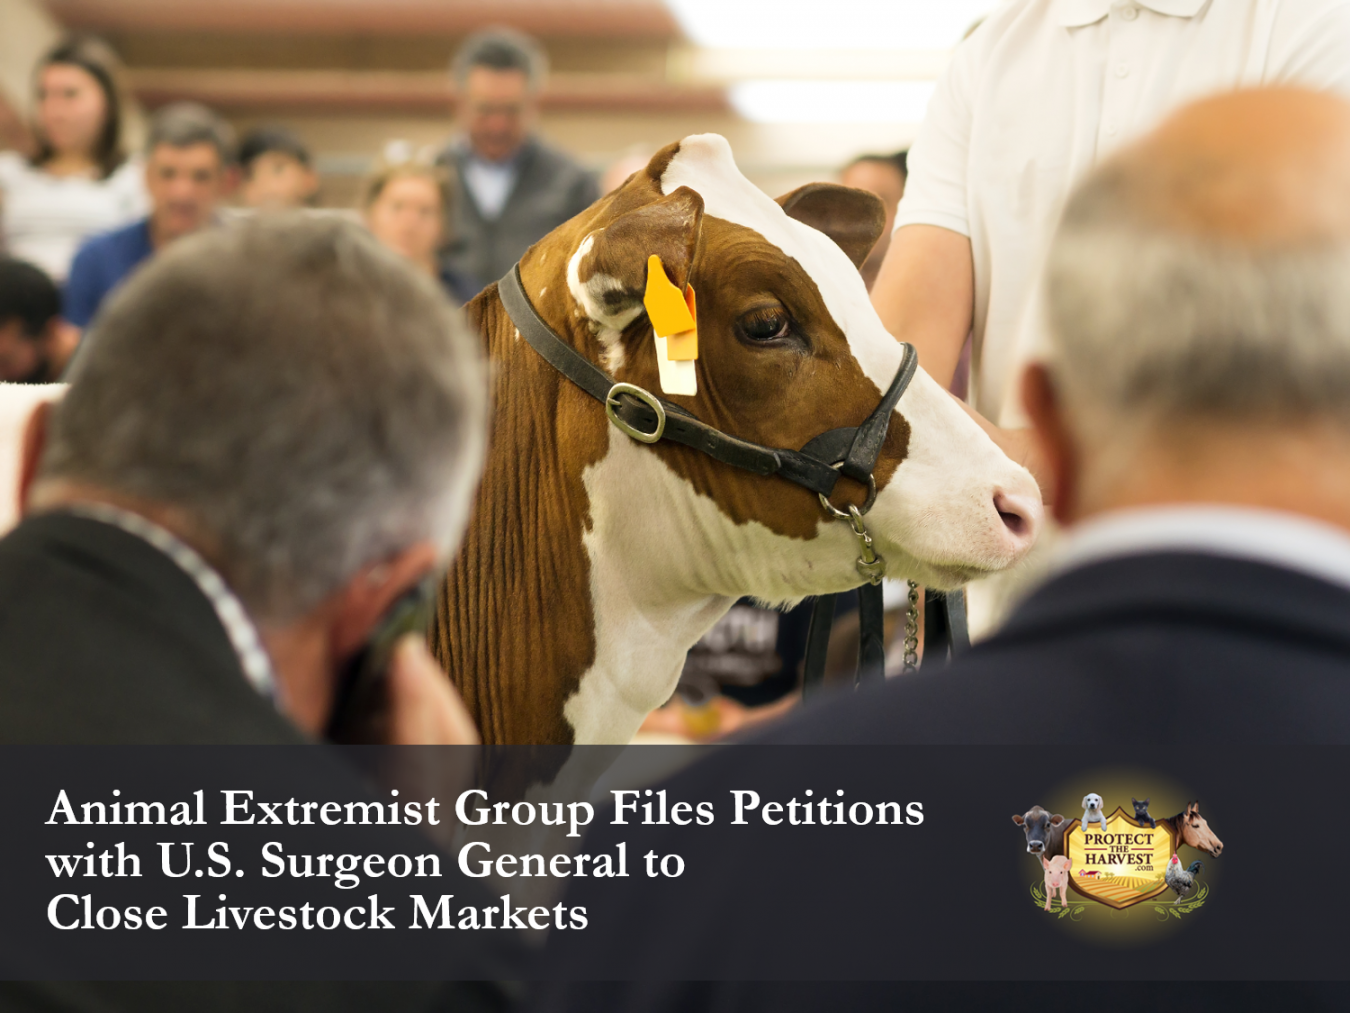 Animal Extremist Group Files Petitions with U.S. Surgeon General and President Trump to Close Livestock Markets